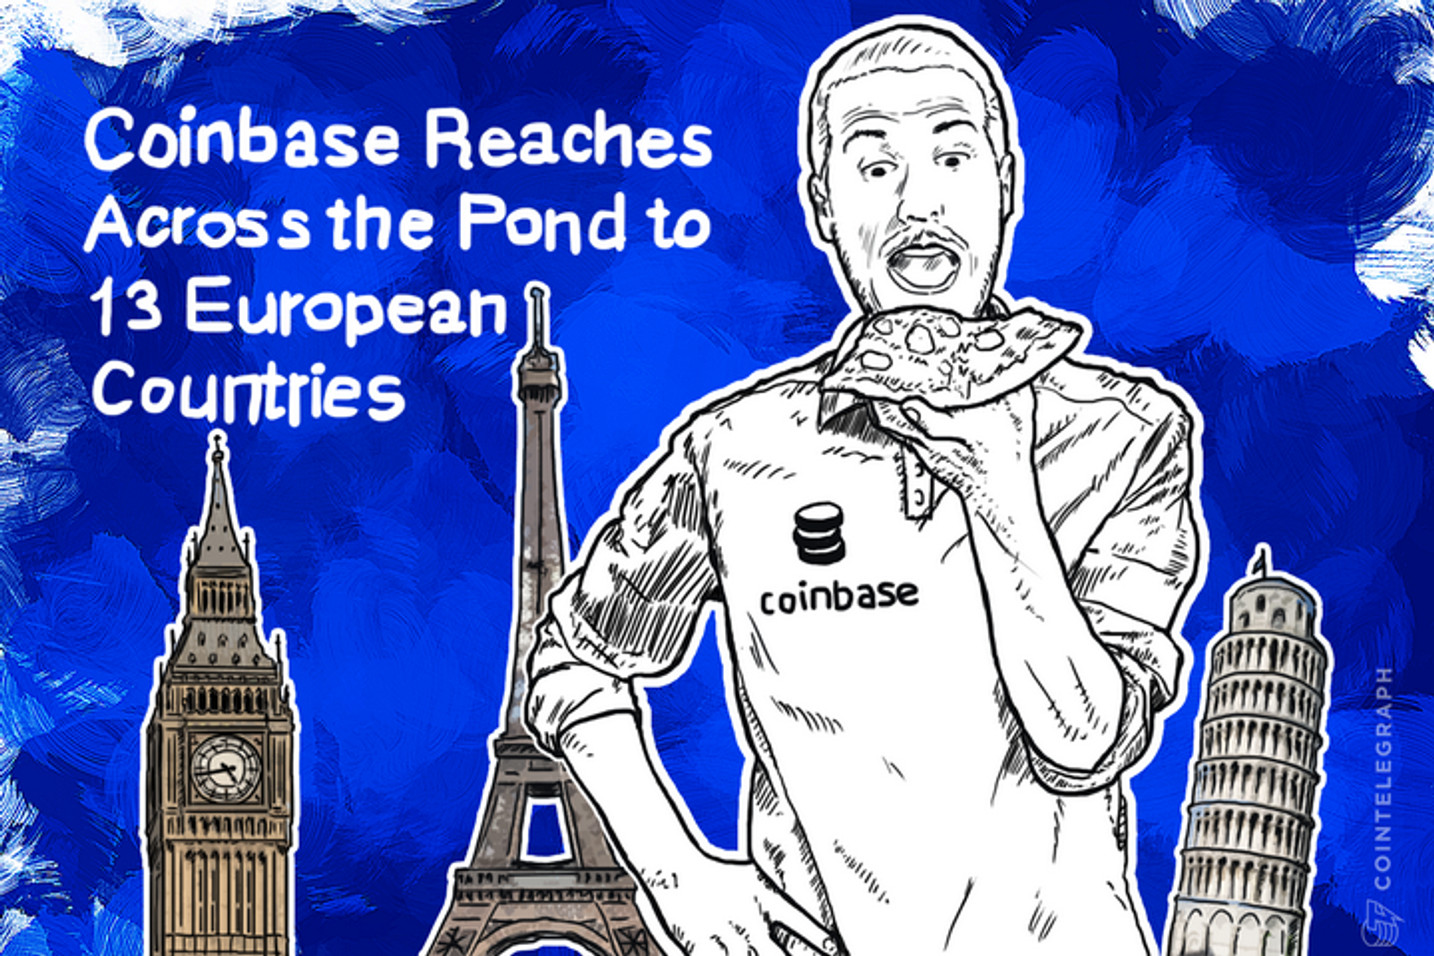 Coinbase Reaches Across the Pond to 13 European Countries